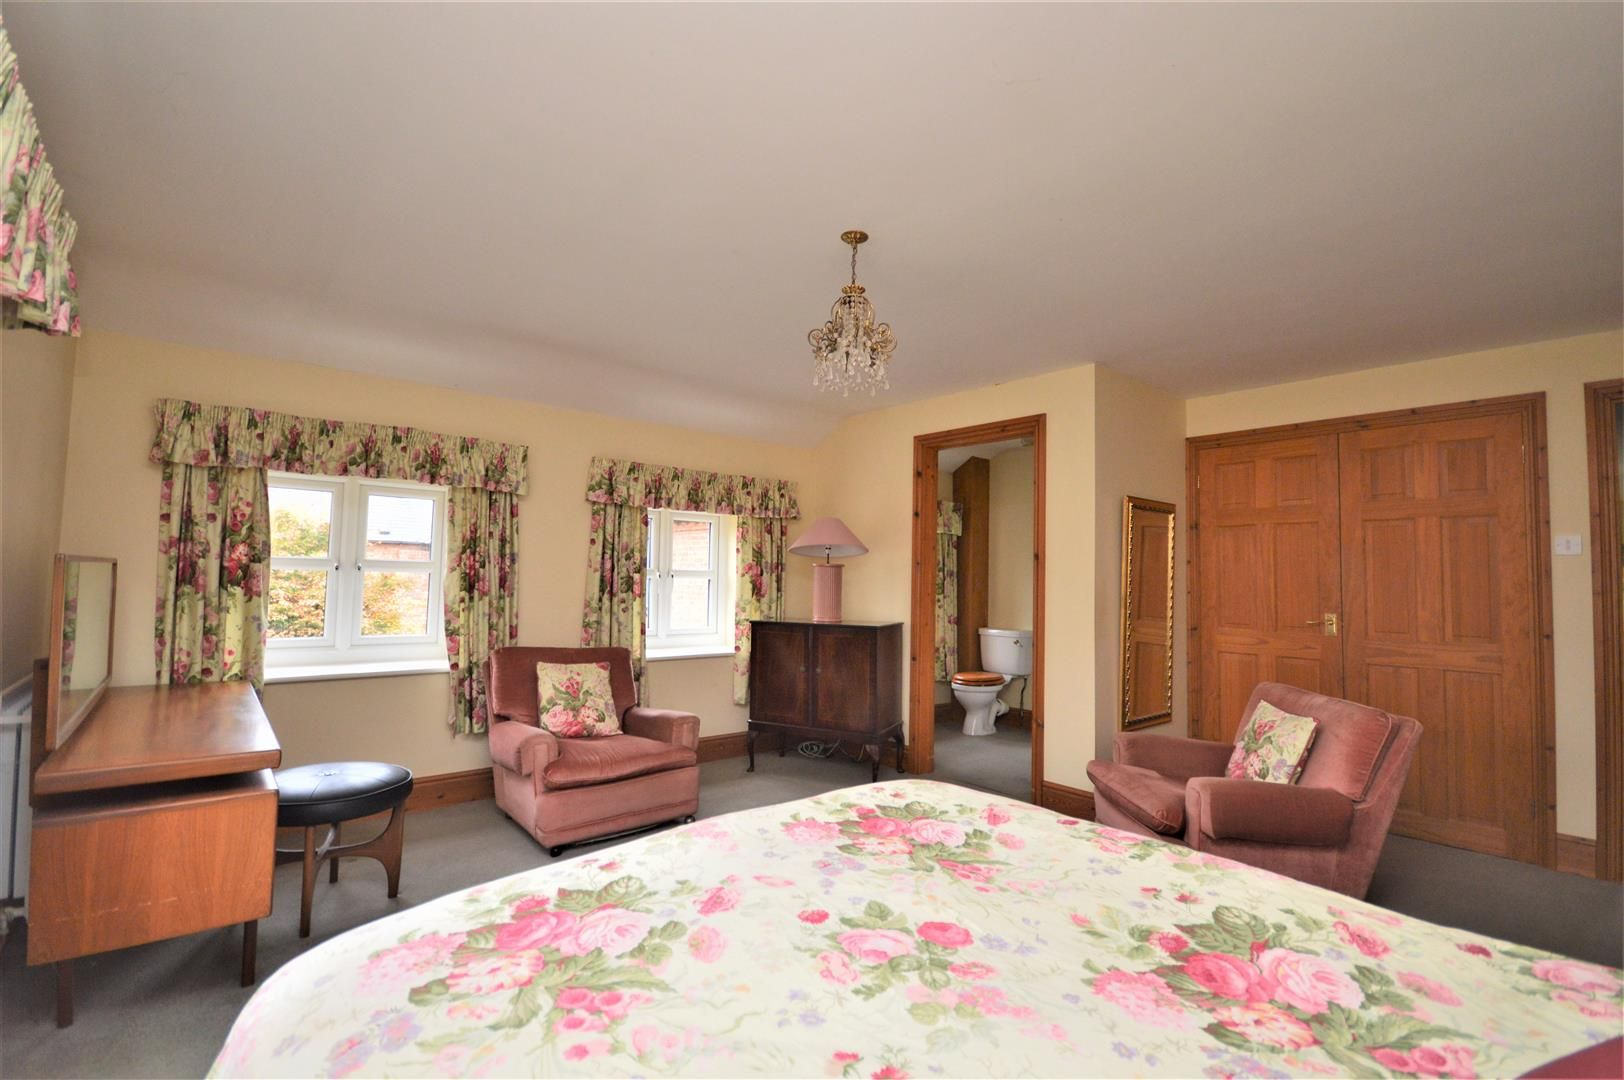 4 bed semi-detached for sale in Nr Madley  - Property Image 9